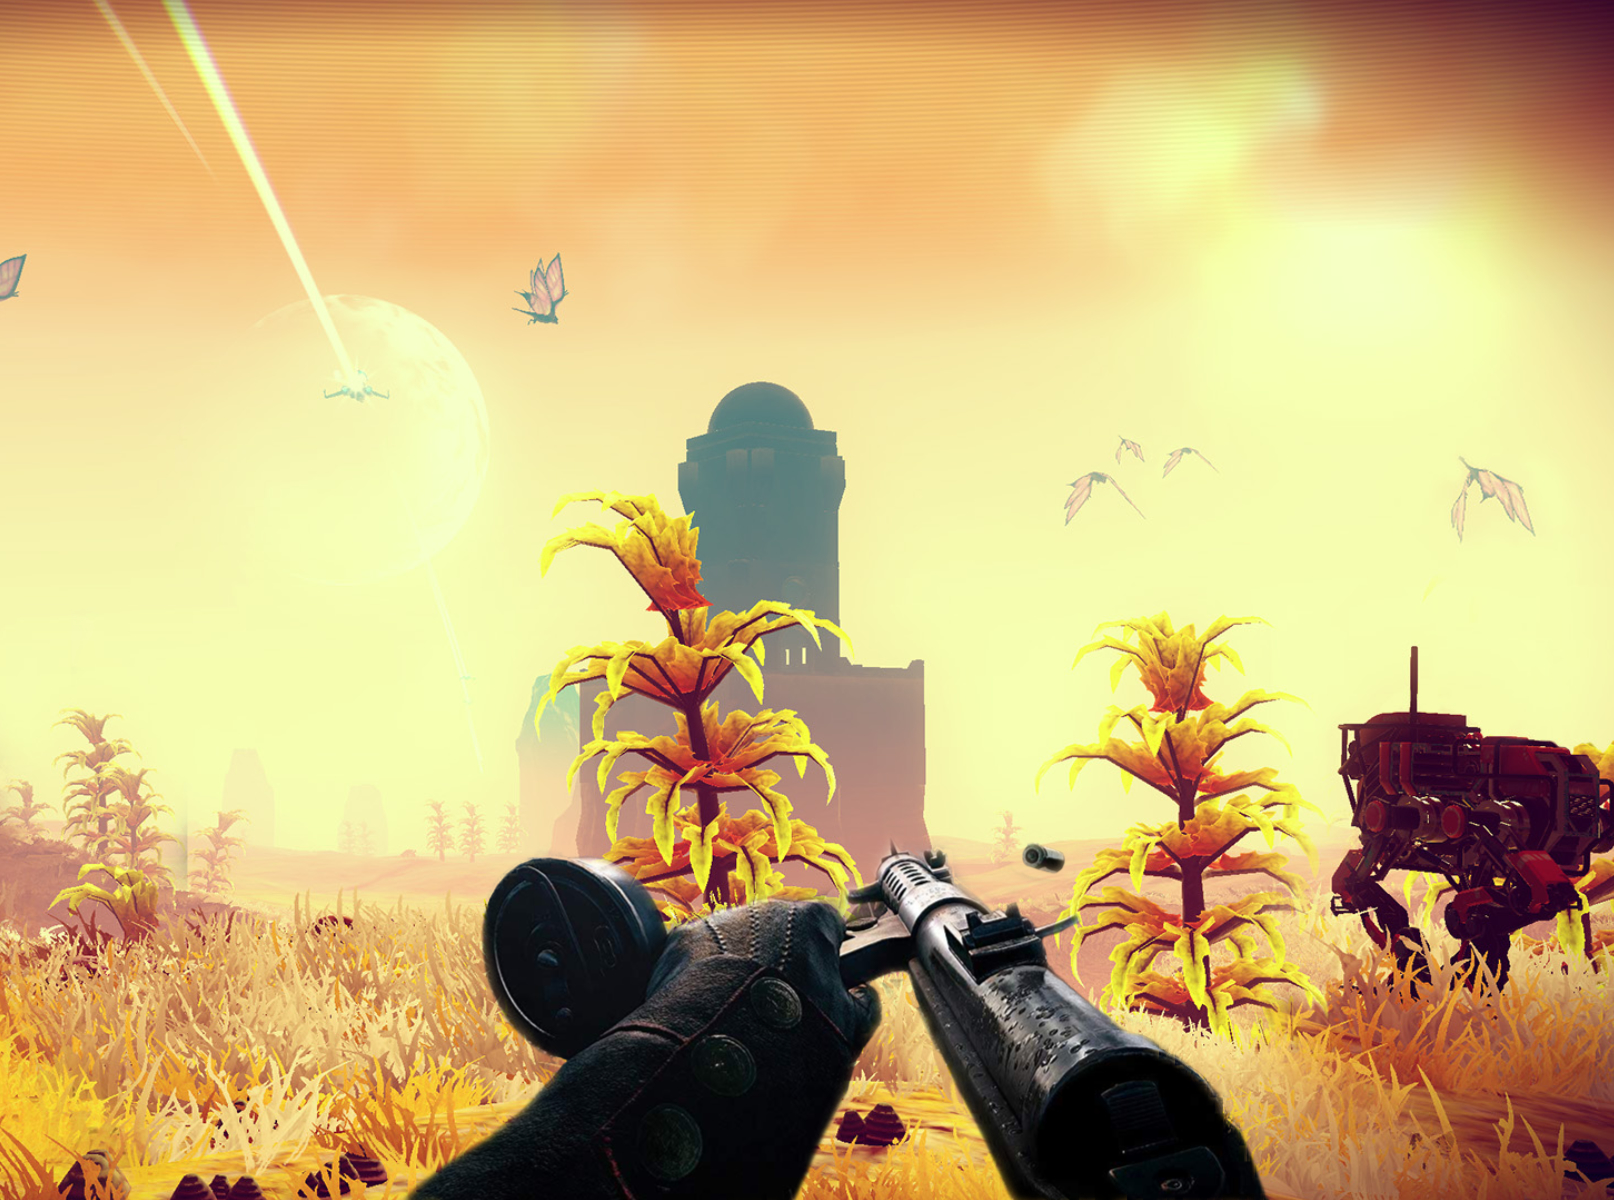 59 – No Man's Sky NEXT / Battlefield 1